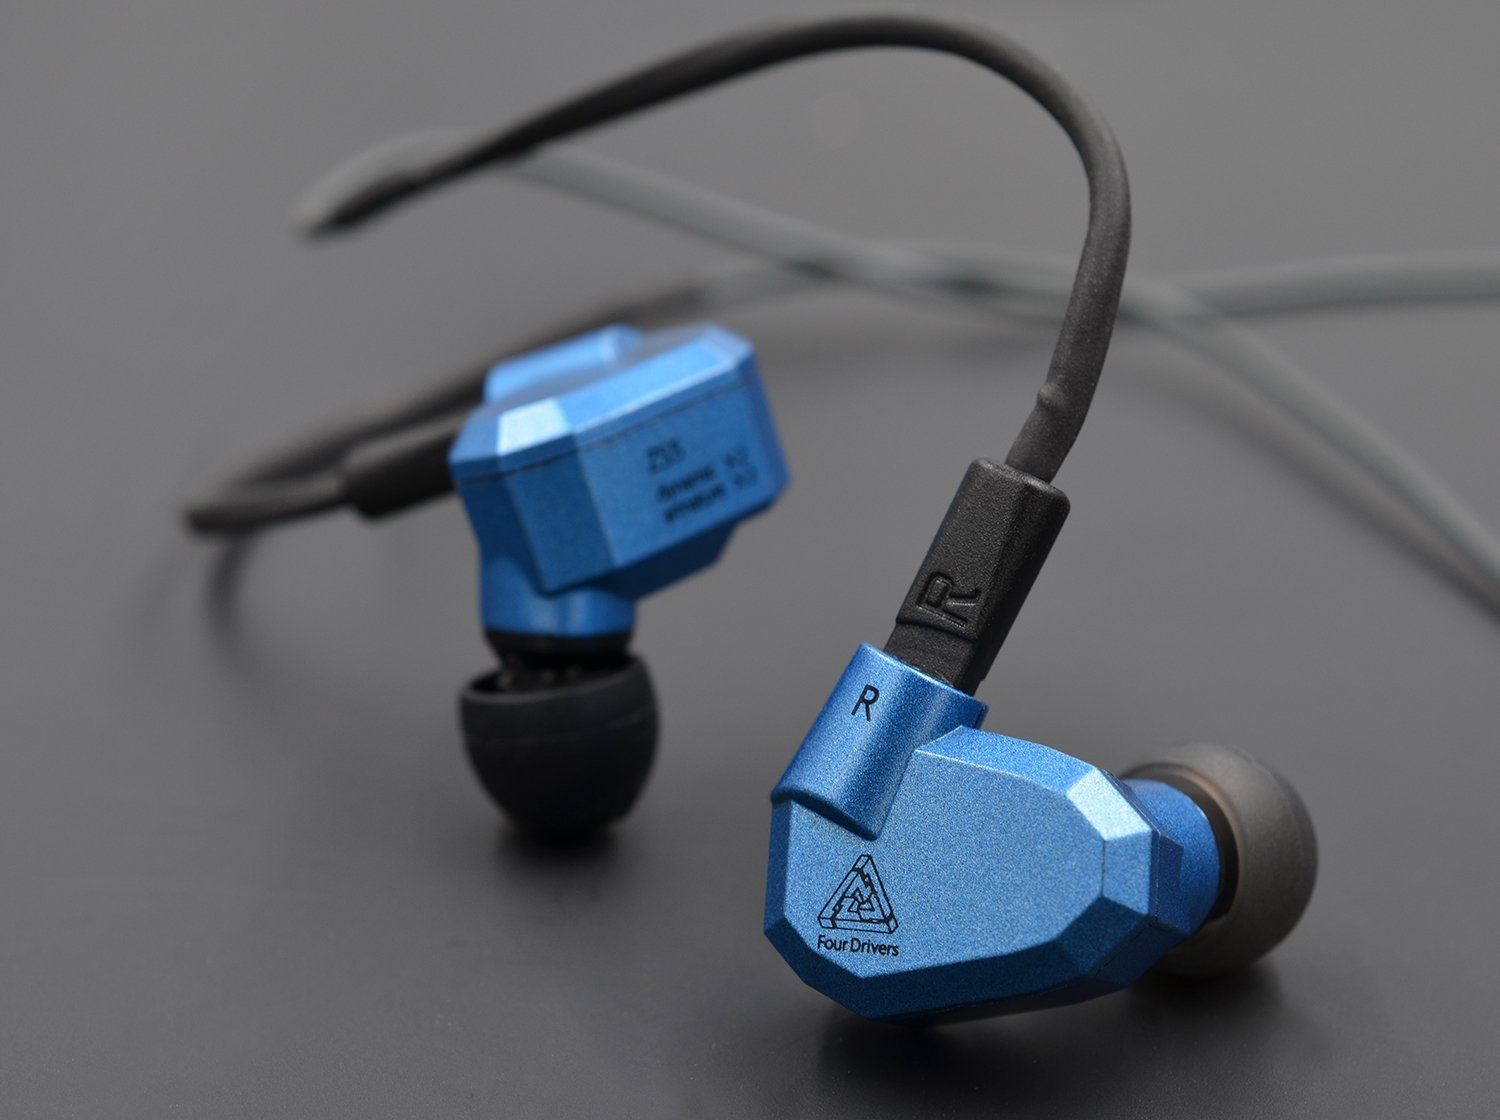 Kz Zs5 Dynamic Hybird Quad Driver High Fidelity In Ear Kabel Bluetooth Module Knowledge Zenith Zs3 Zs6 Zst Headphones With Microphone And Remoteblue Home Audio Theater